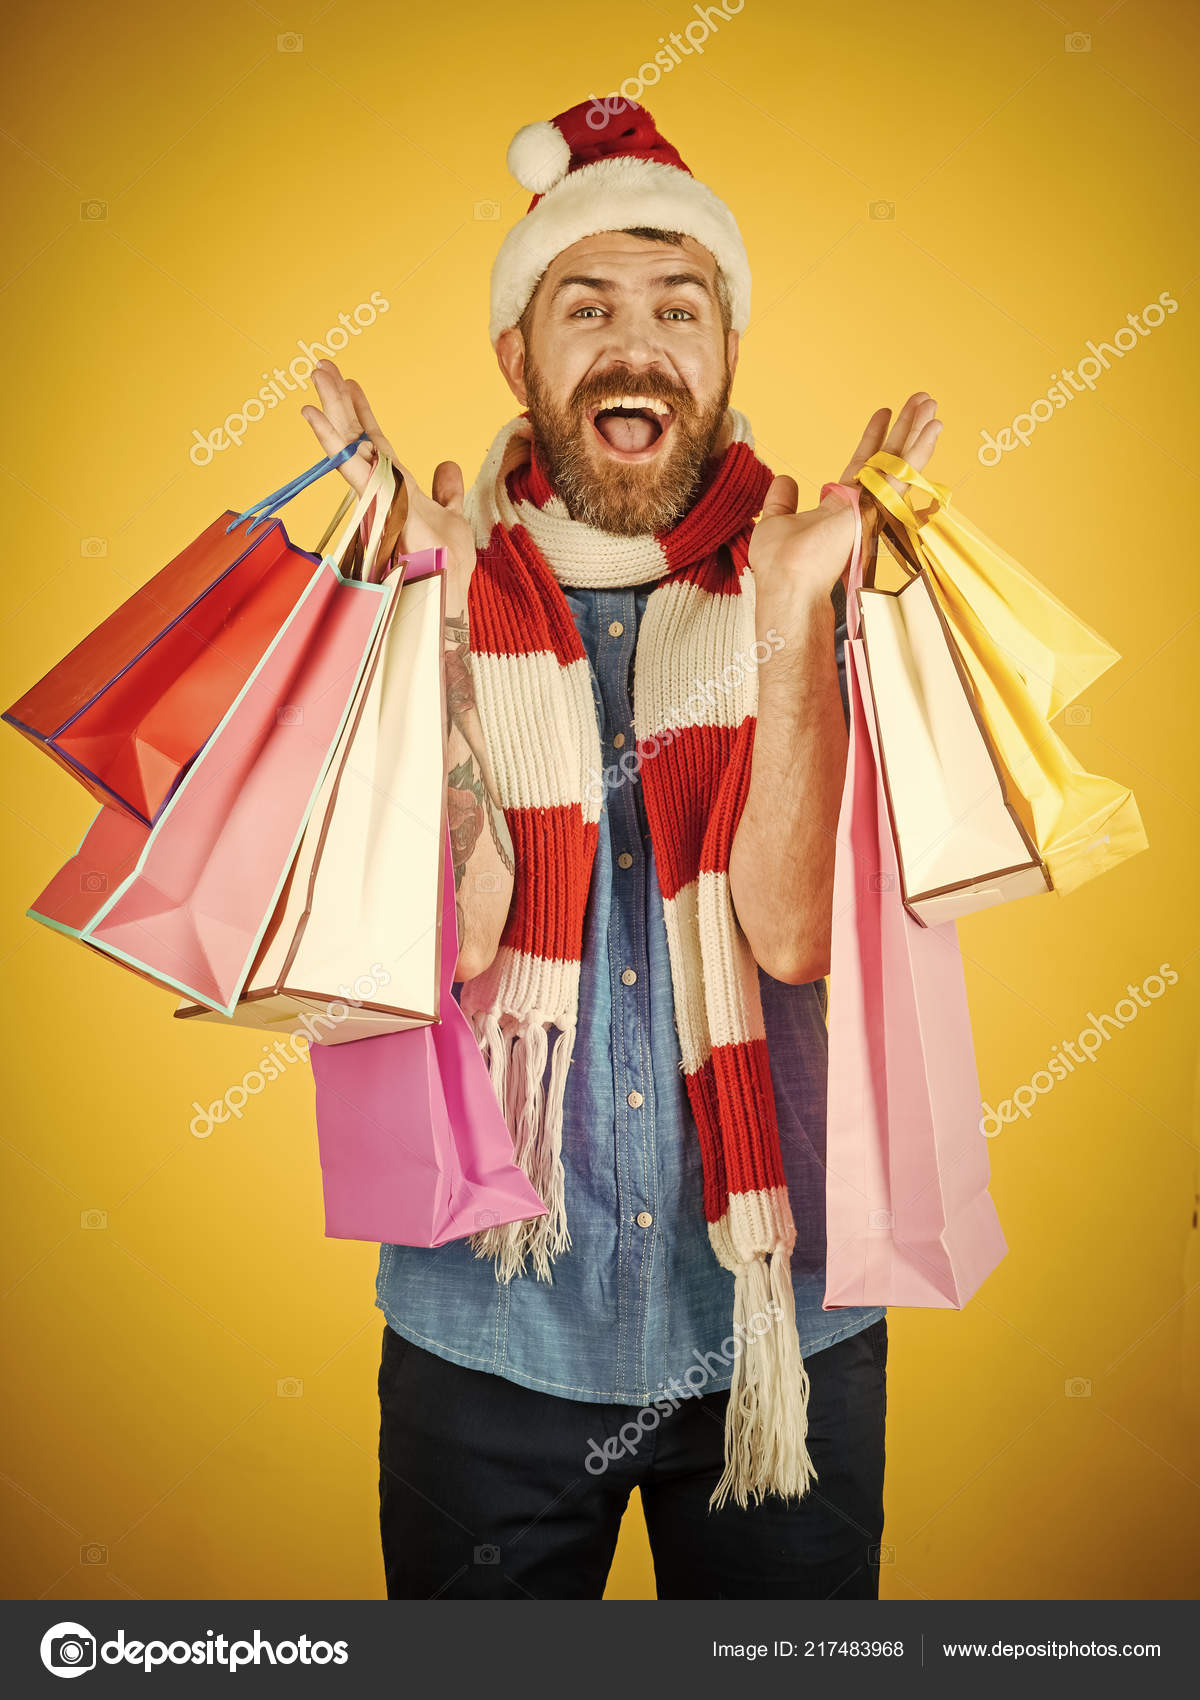 396a703a0675a Christmas man hold shopping bags on yellow background. Black friday sale  concept. Winter holidays celebration. Hipster shopper smile in santa hat  and scarf.